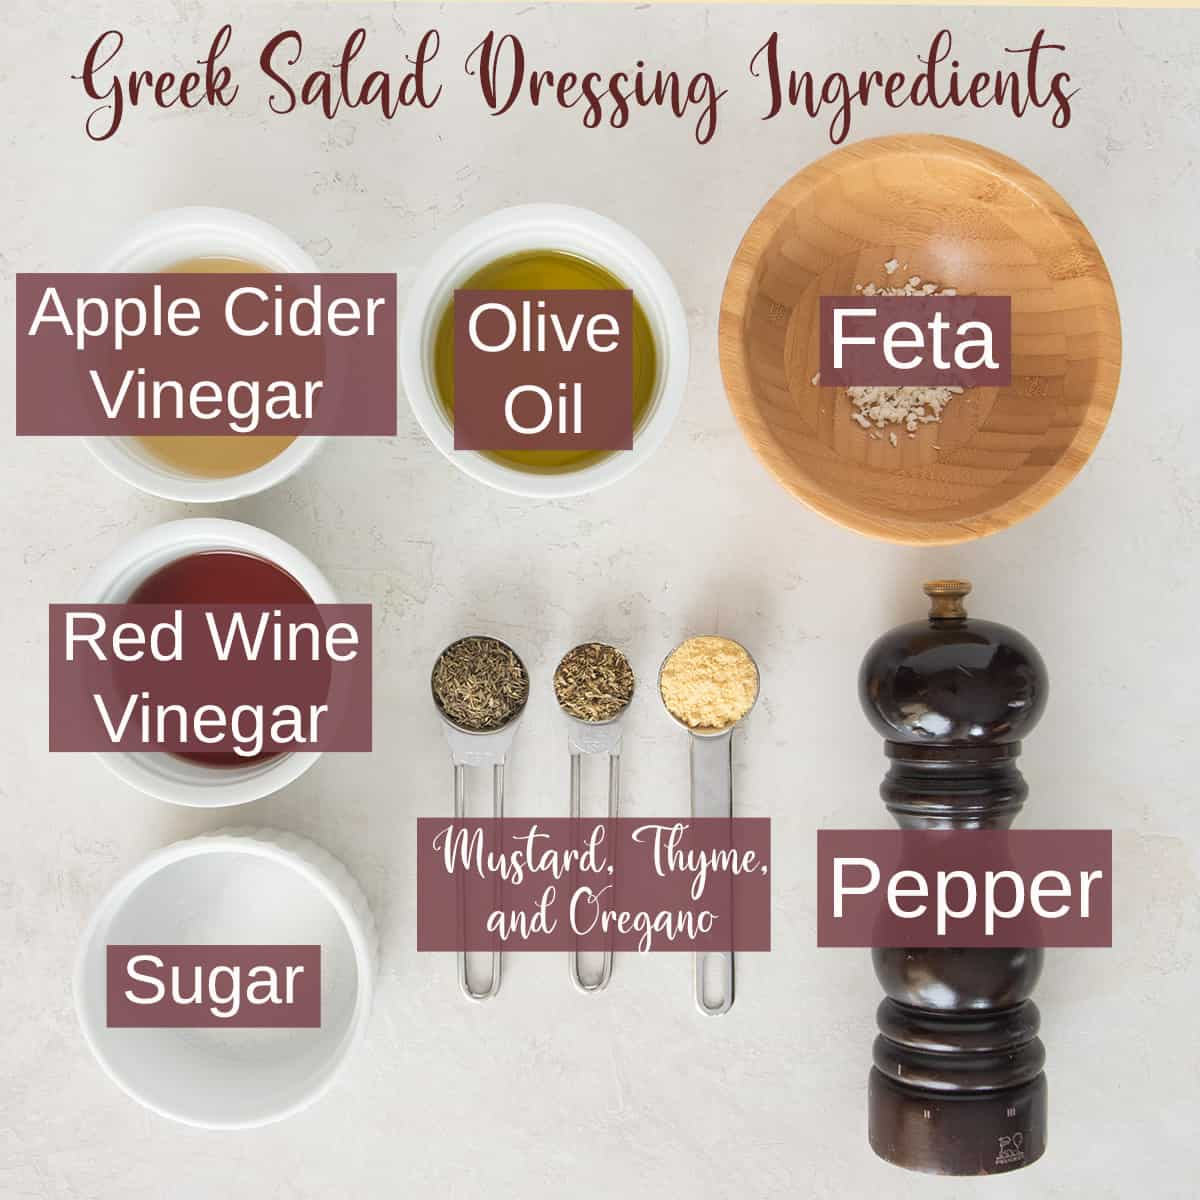 Greek dressing recipe ingredients with text labels.